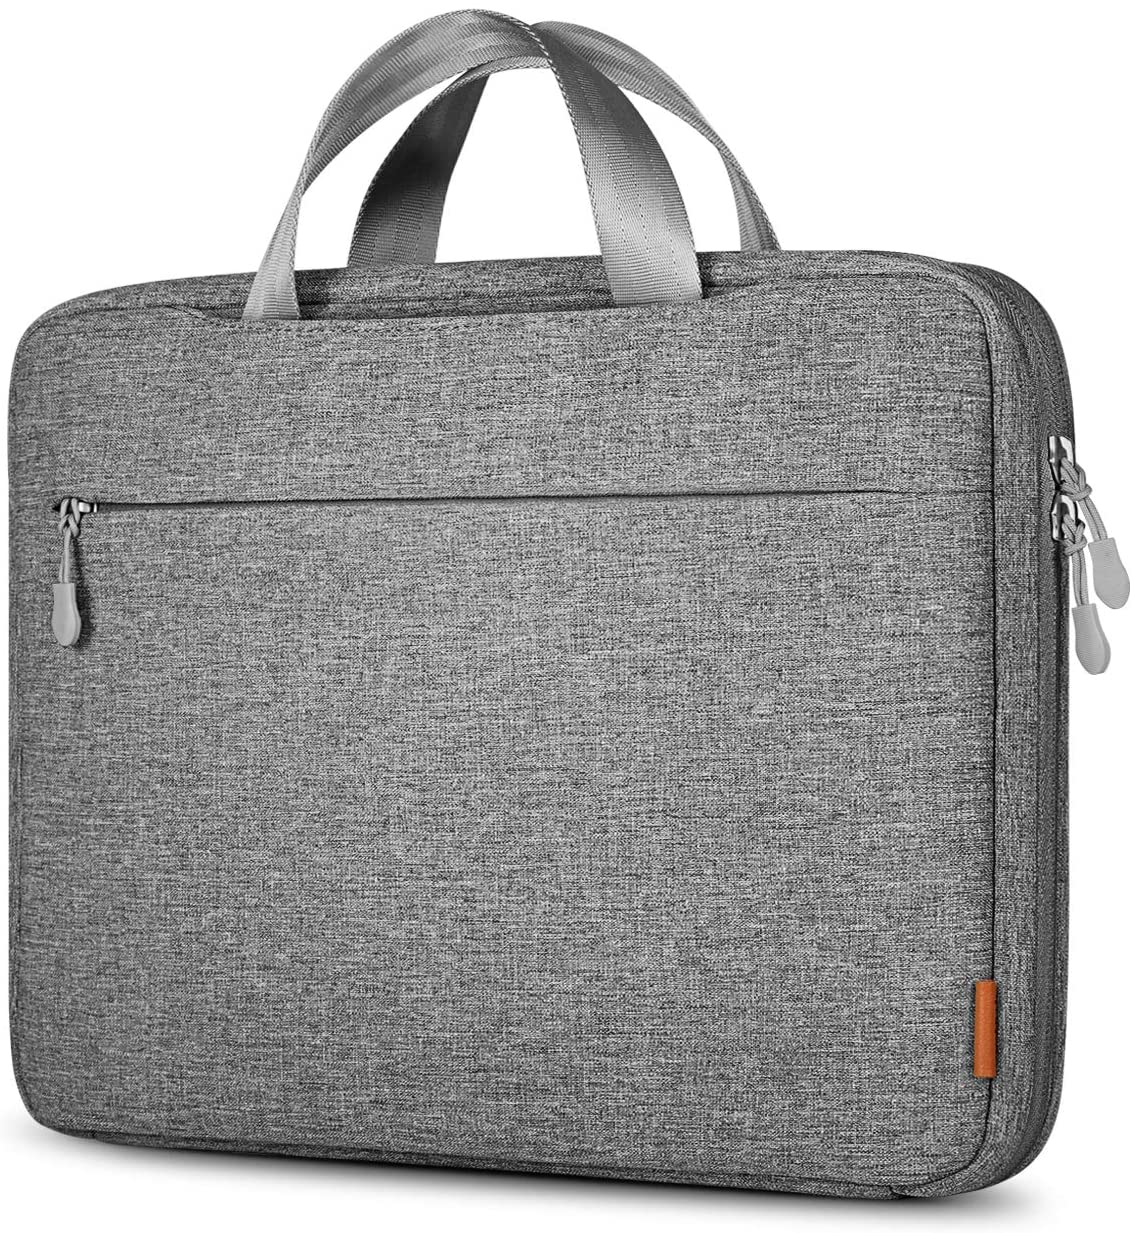 11 Inch Case Sleeve for Tablets with Keyboard LB02009-11, Gray - Inateck Backpacks